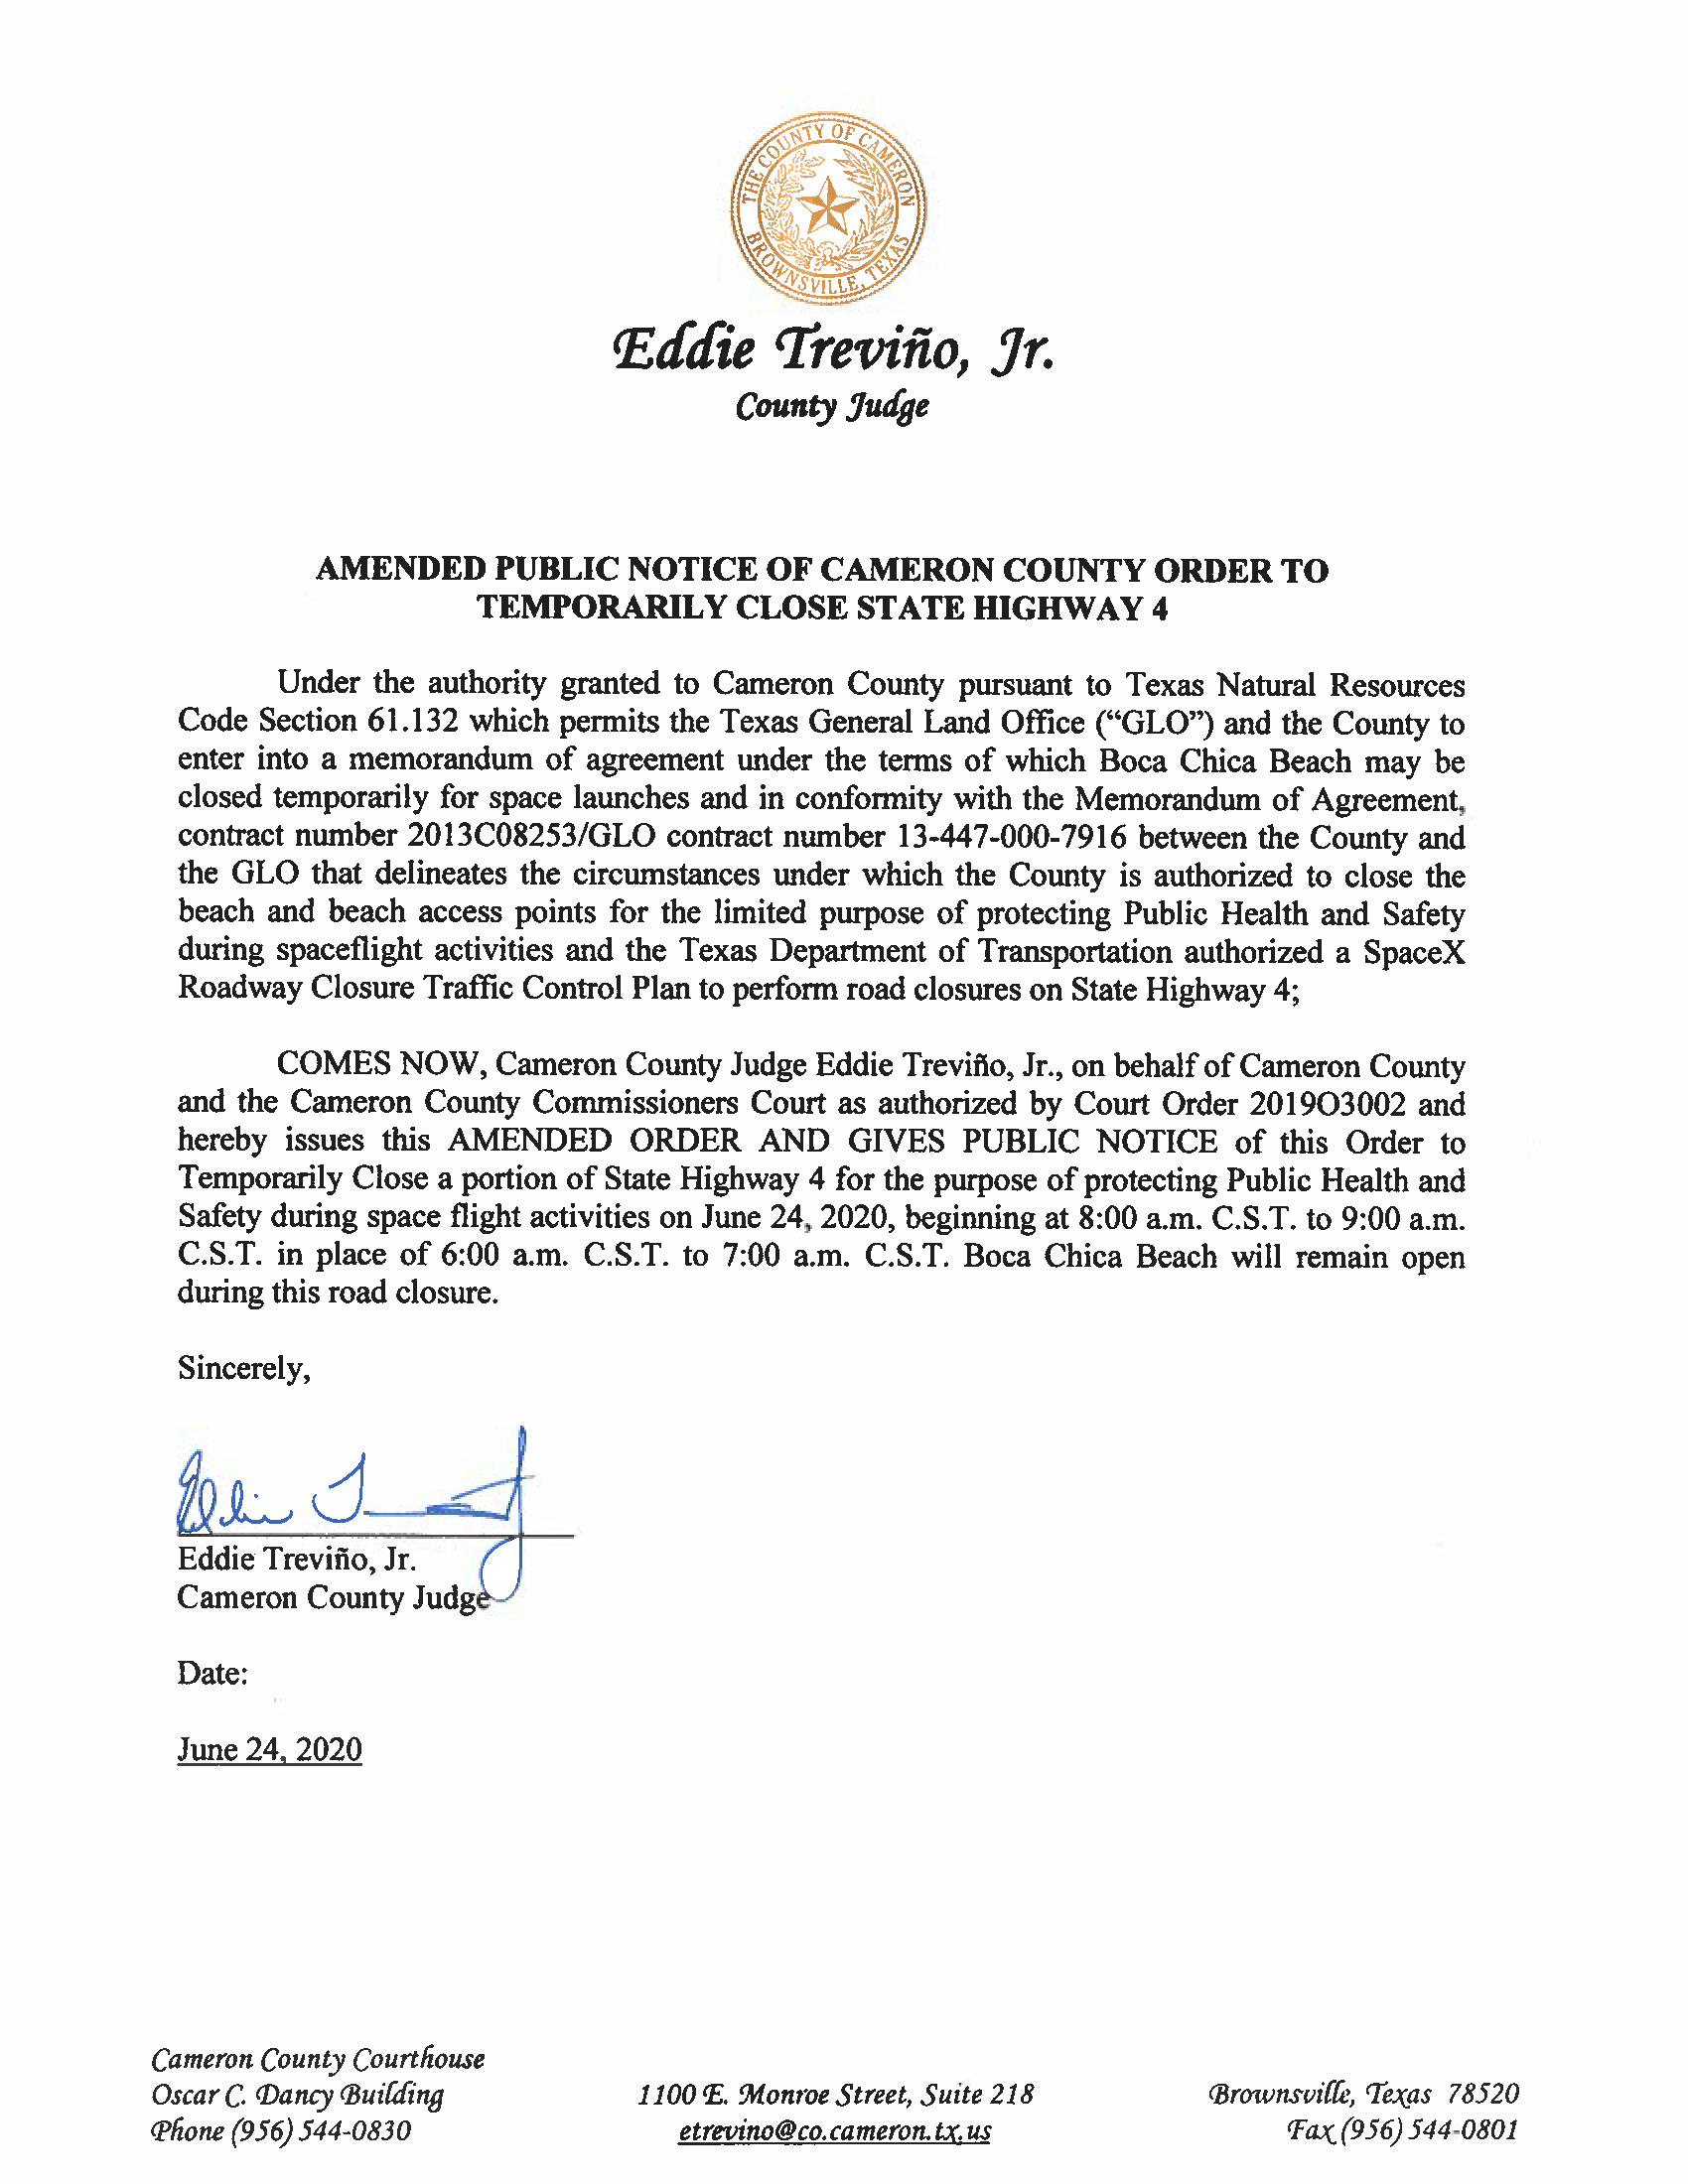 AMENDED PUBLIC NOTICE OF CAMERON COUNTY ORDER TO TEMP. ROAD CLOSURE. 06.24.20